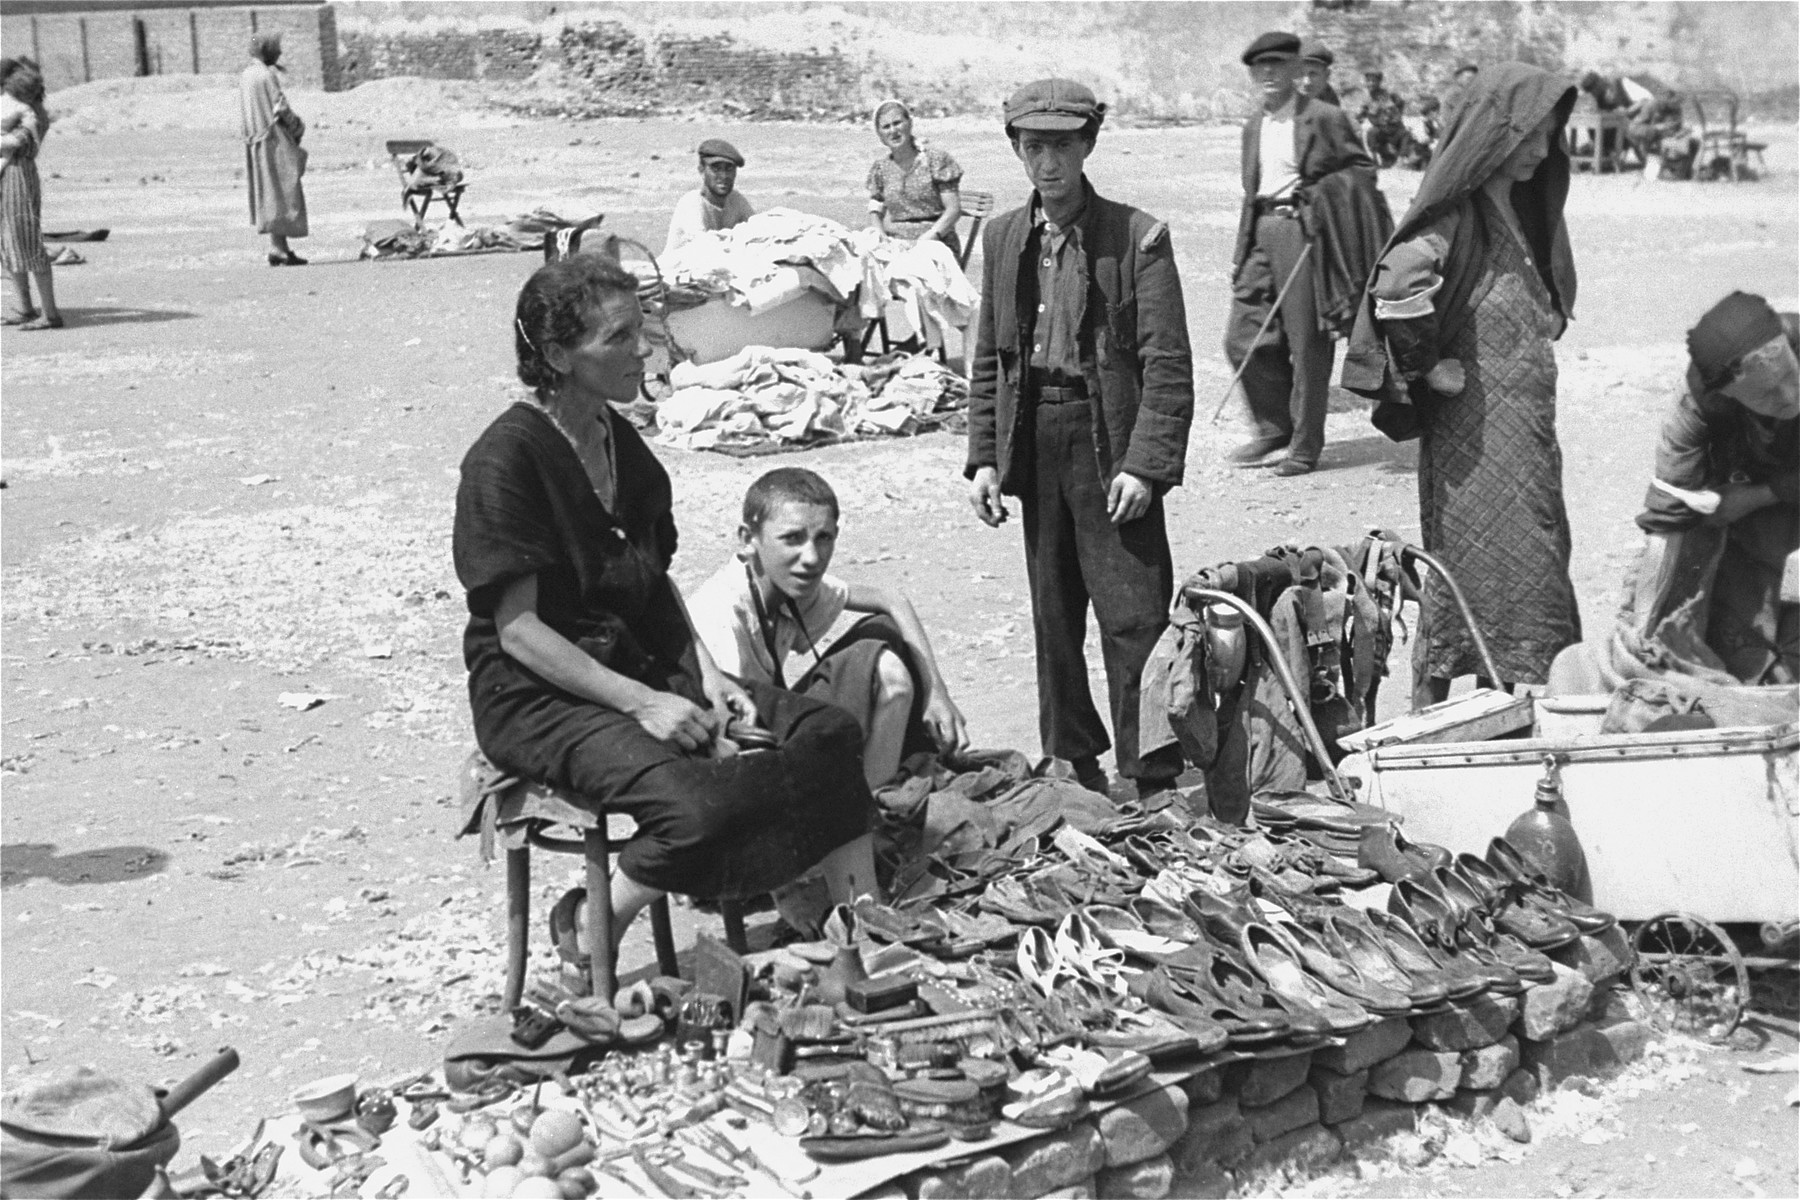 Vendors sell old shoes and other items of used clothing at an open air market in the Warsaw ghetto.